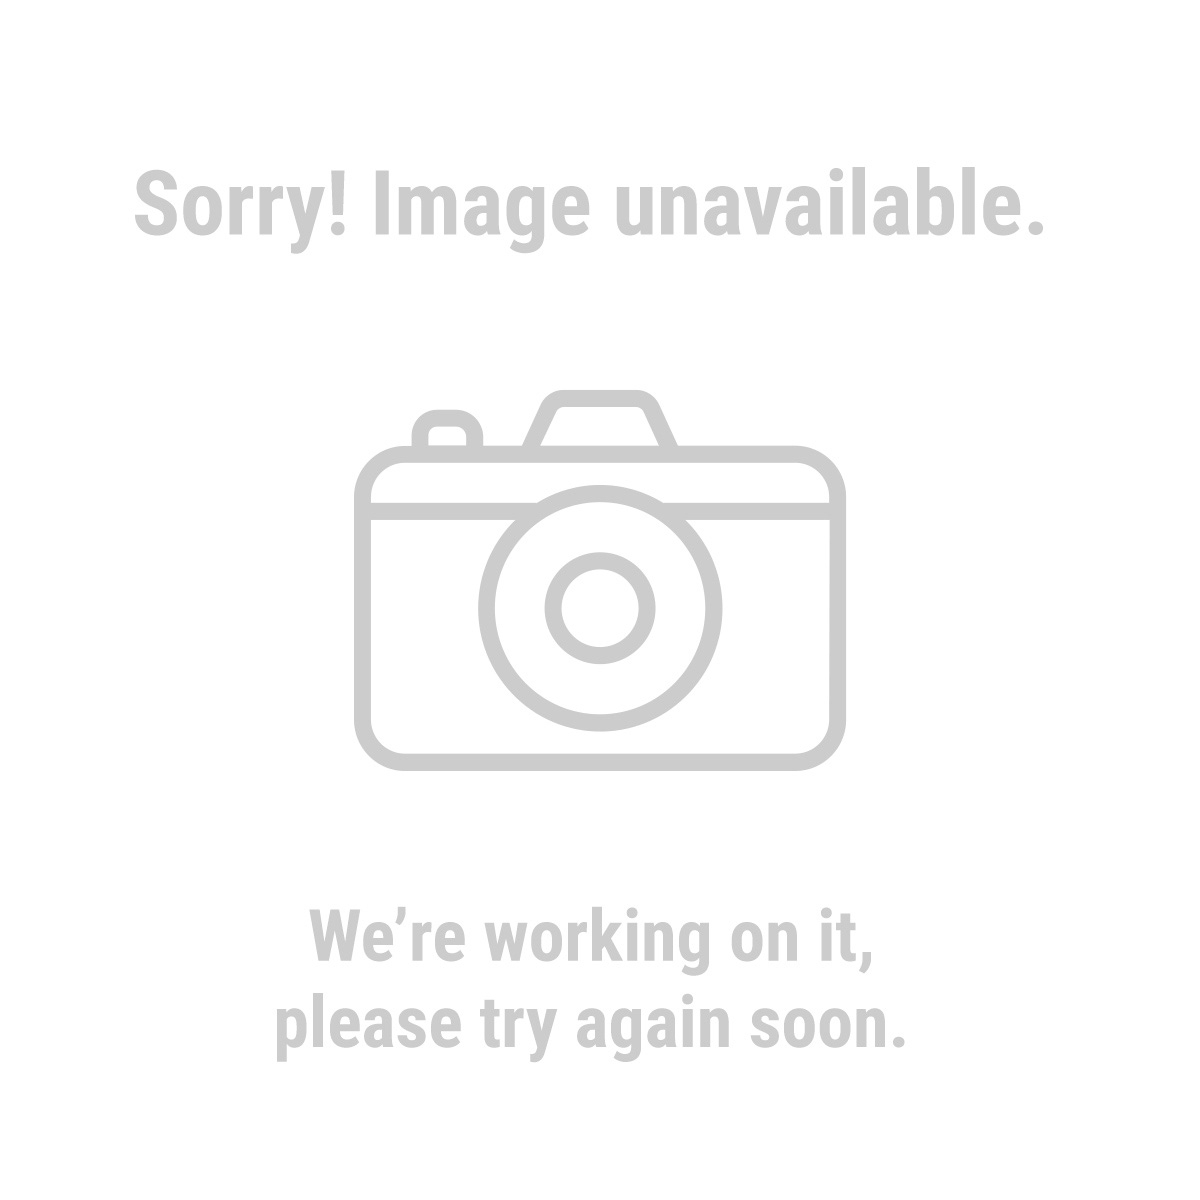 Electric Grinder Tool ~ Angle grinder vs cut off tool electric pneumatic